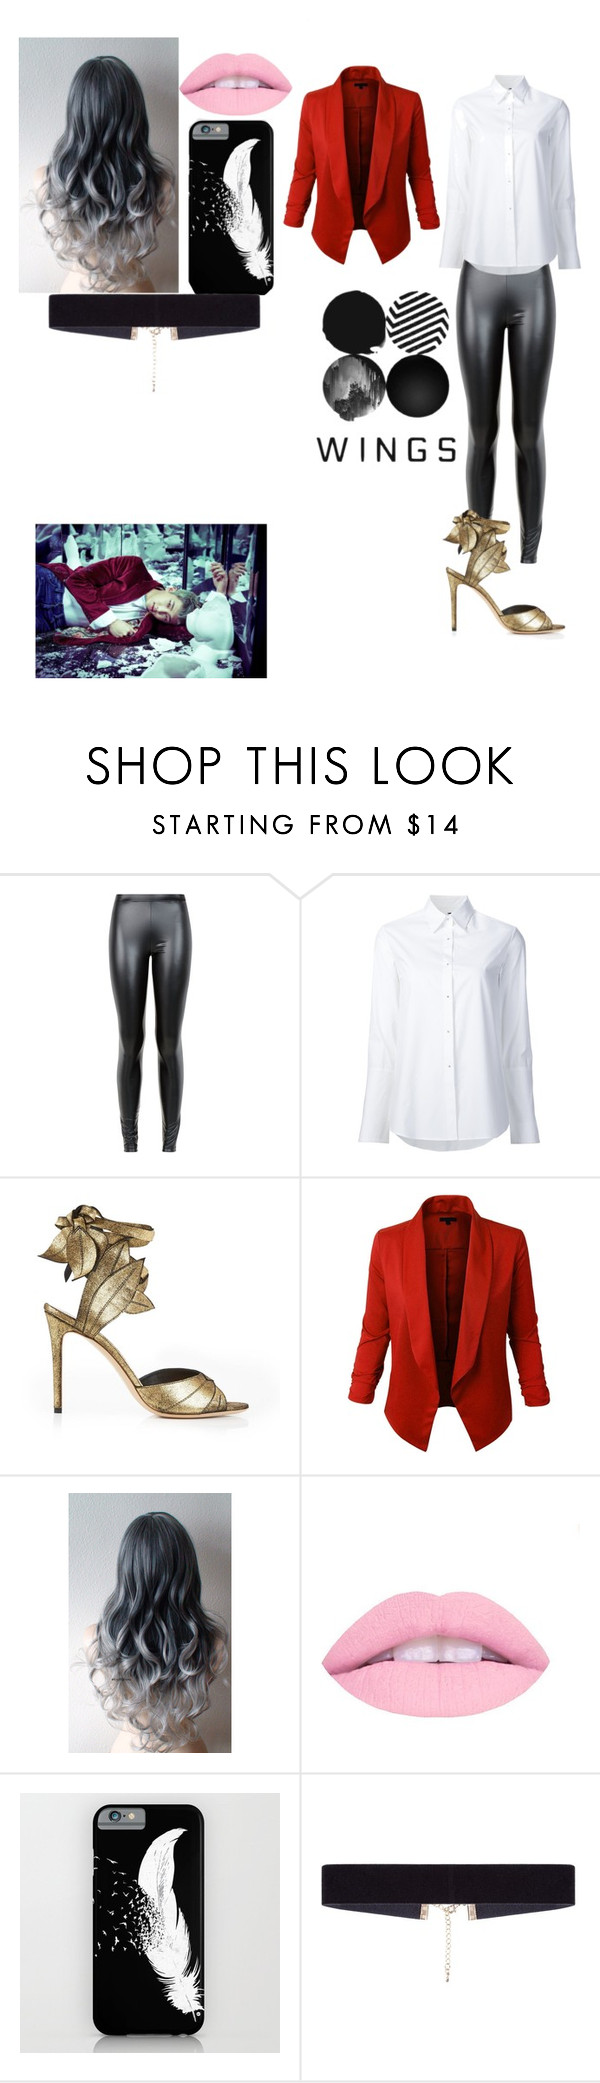 """""""Rap monster wings"""" by btsgirl1234 ❤ liked on Polyvore featuring JDY, Misha Nonoo, Vivienne Westwood and 8 Other Reasons"""